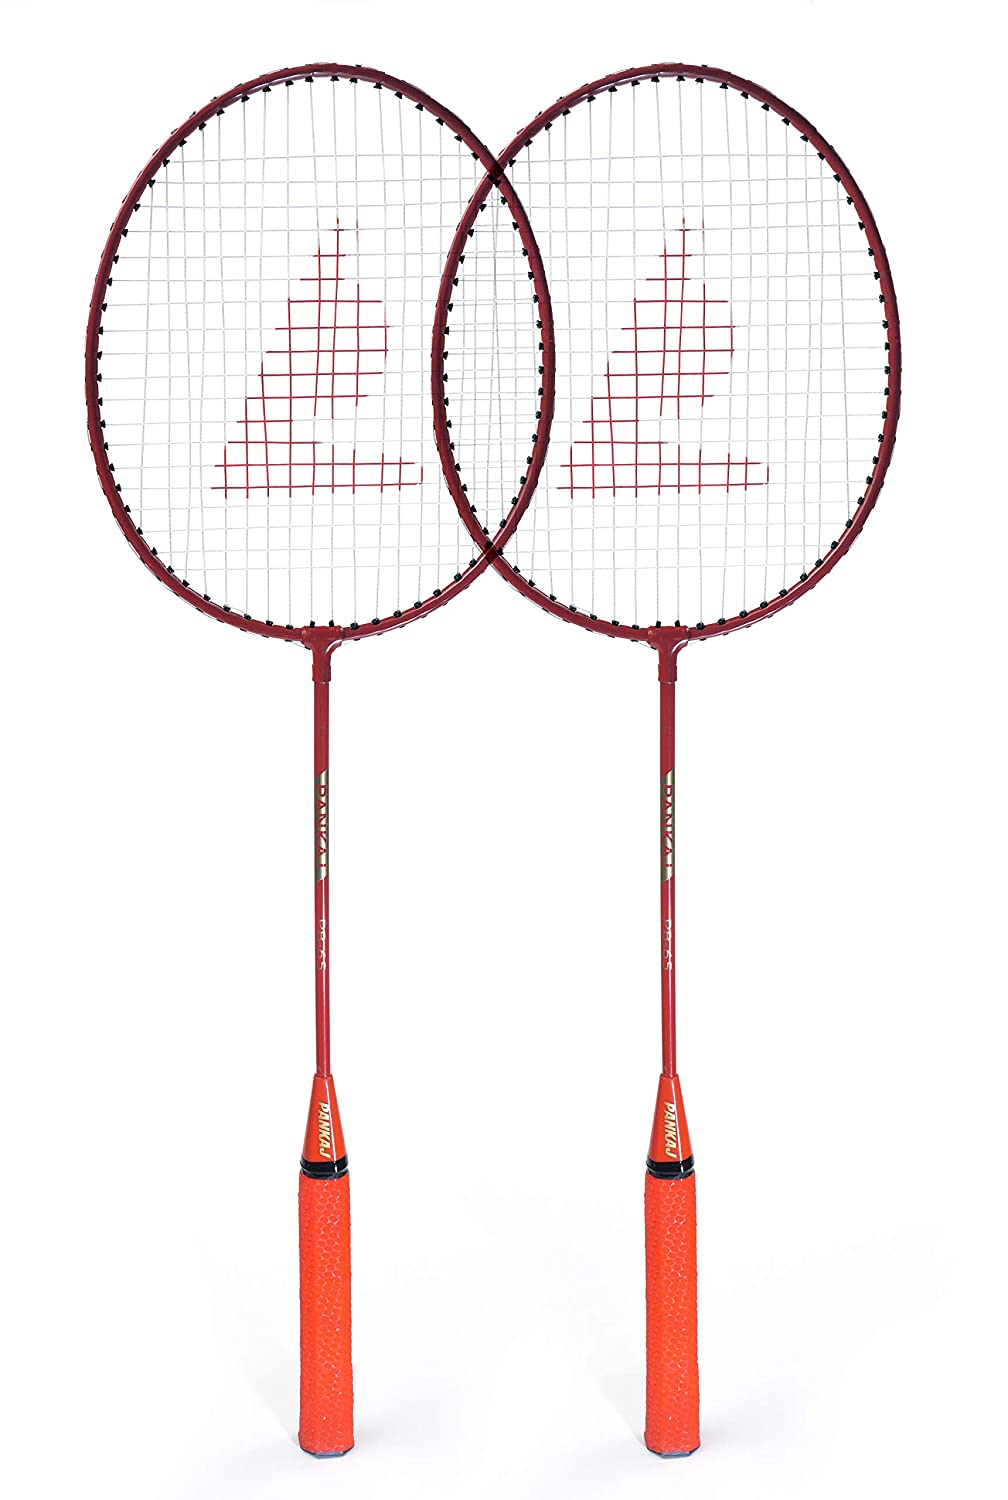 Badminton Racket - PB 65 - Pack for 2 (Orange)